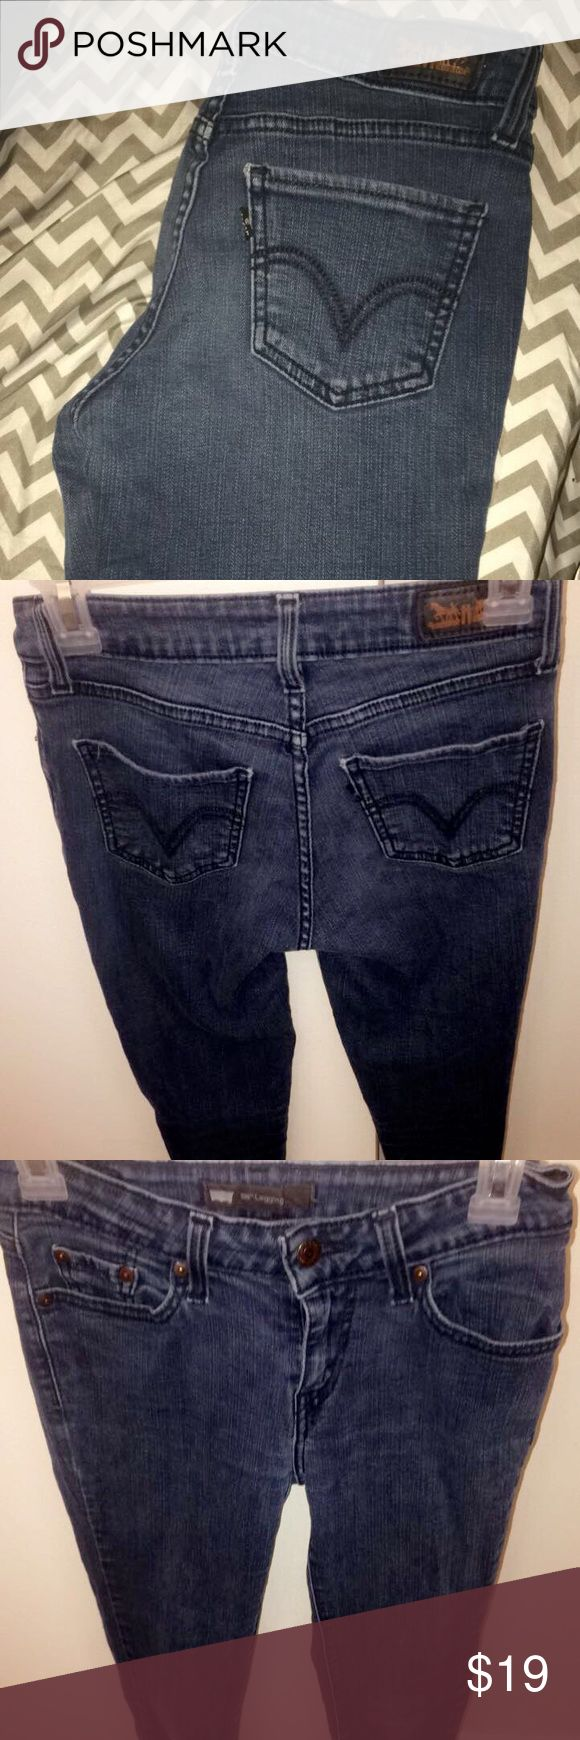 Levi Skinny Jeans Worn, still in good condition! Levi Skinny Jeans,  legging type of jeans. Little marks of wear near the knee part of the knees not noticeable.size:3M usually a 26 inch in jeans Levi's Jeans Skinny